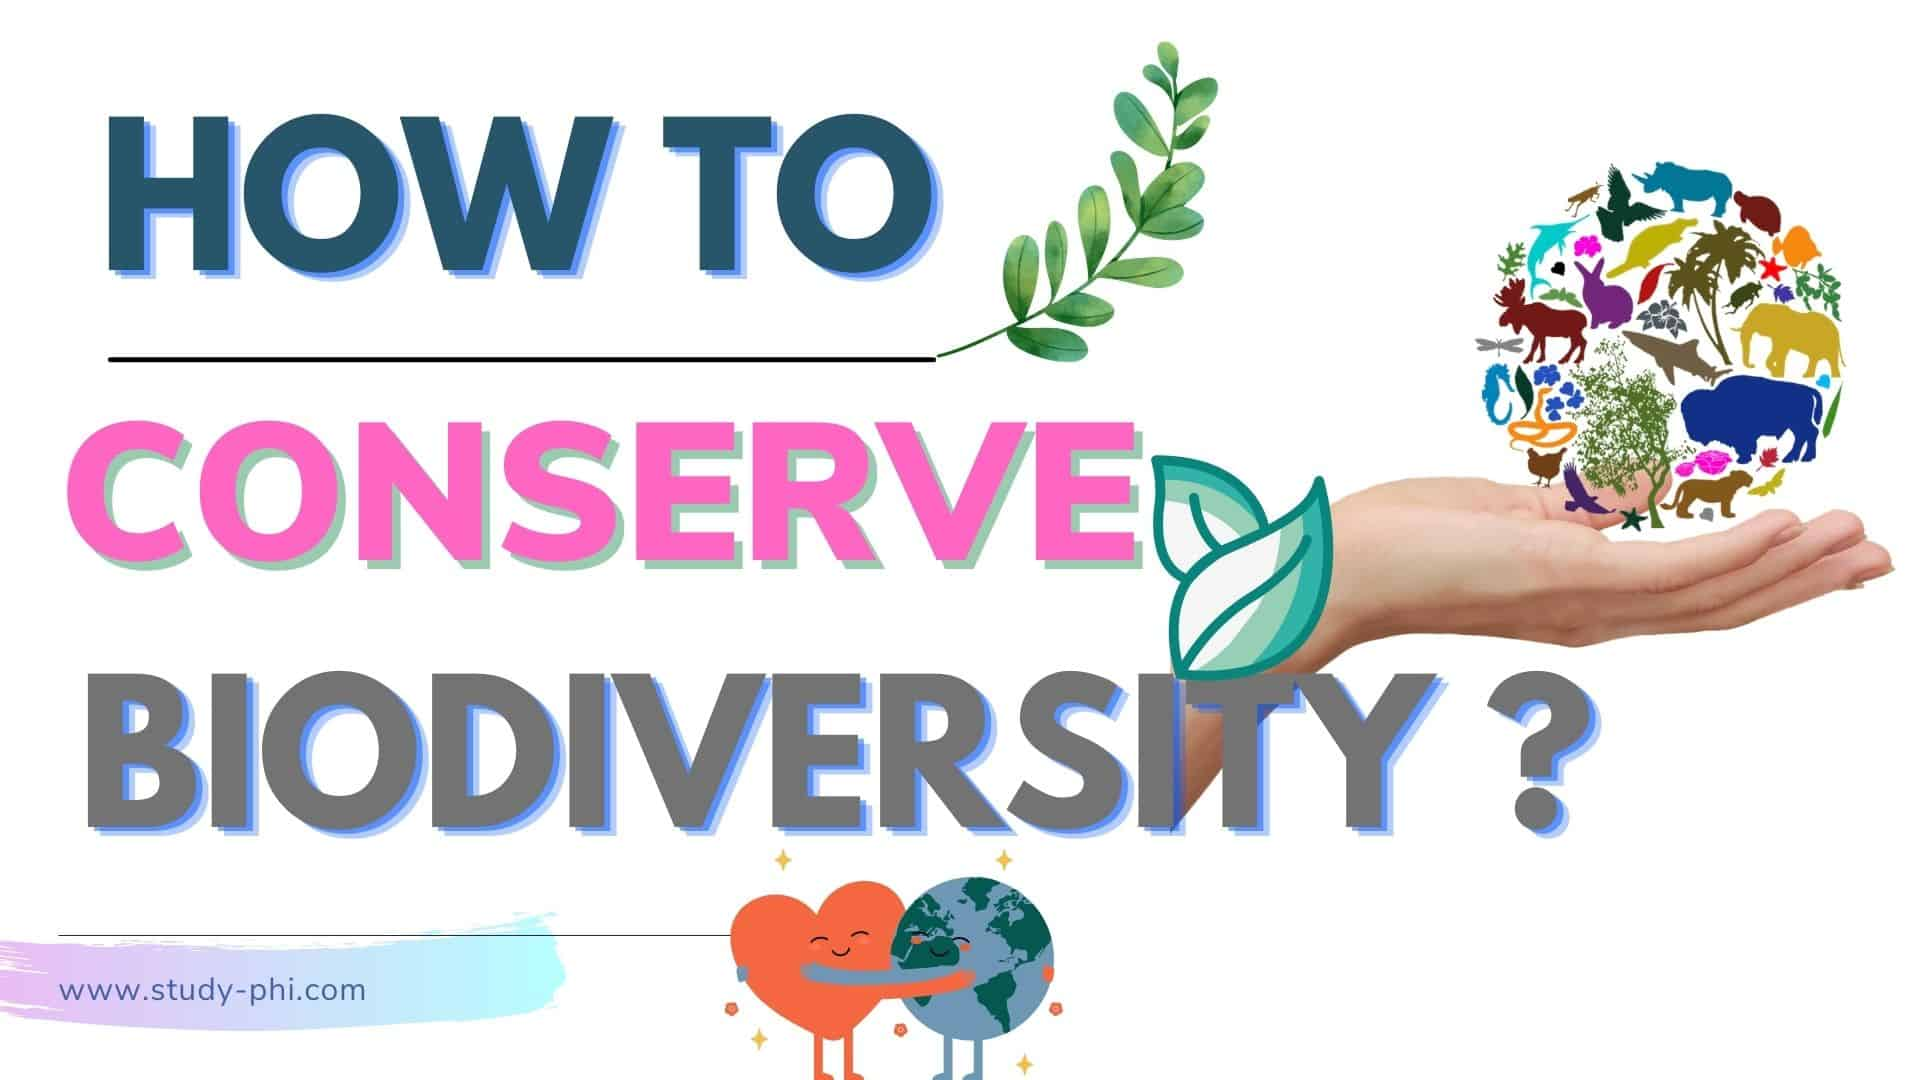 How To Conserve The Biodiversity